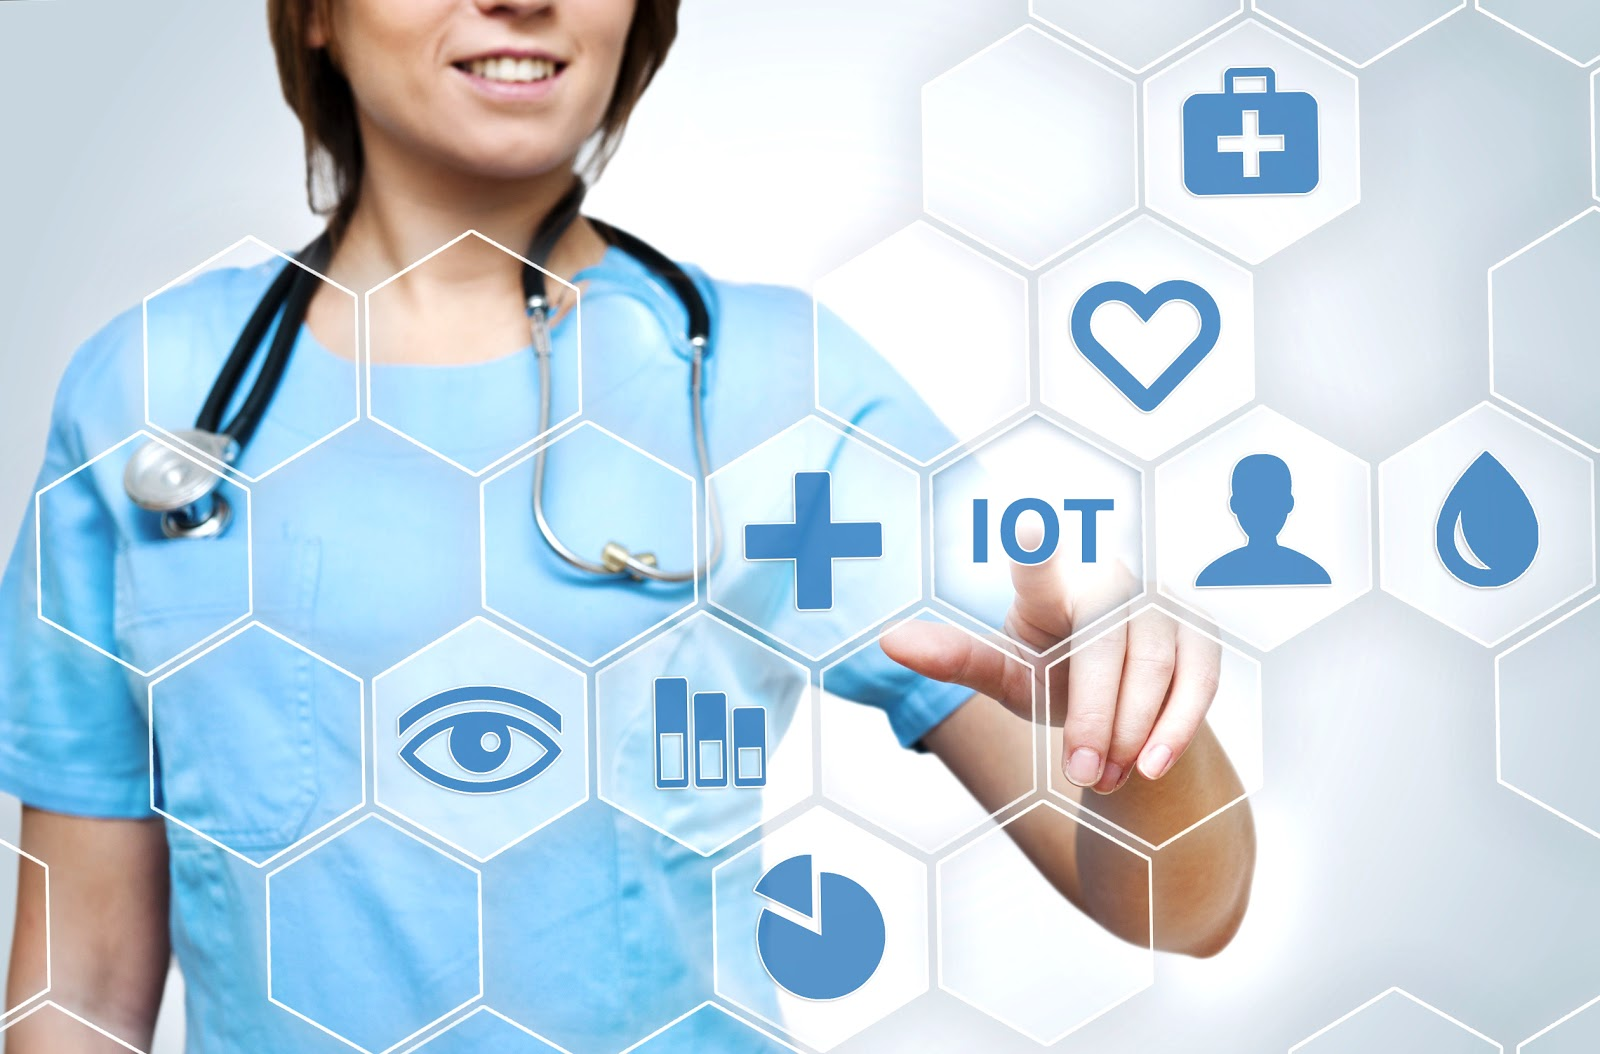 Is there any chance that the Internet of things will change medicine?